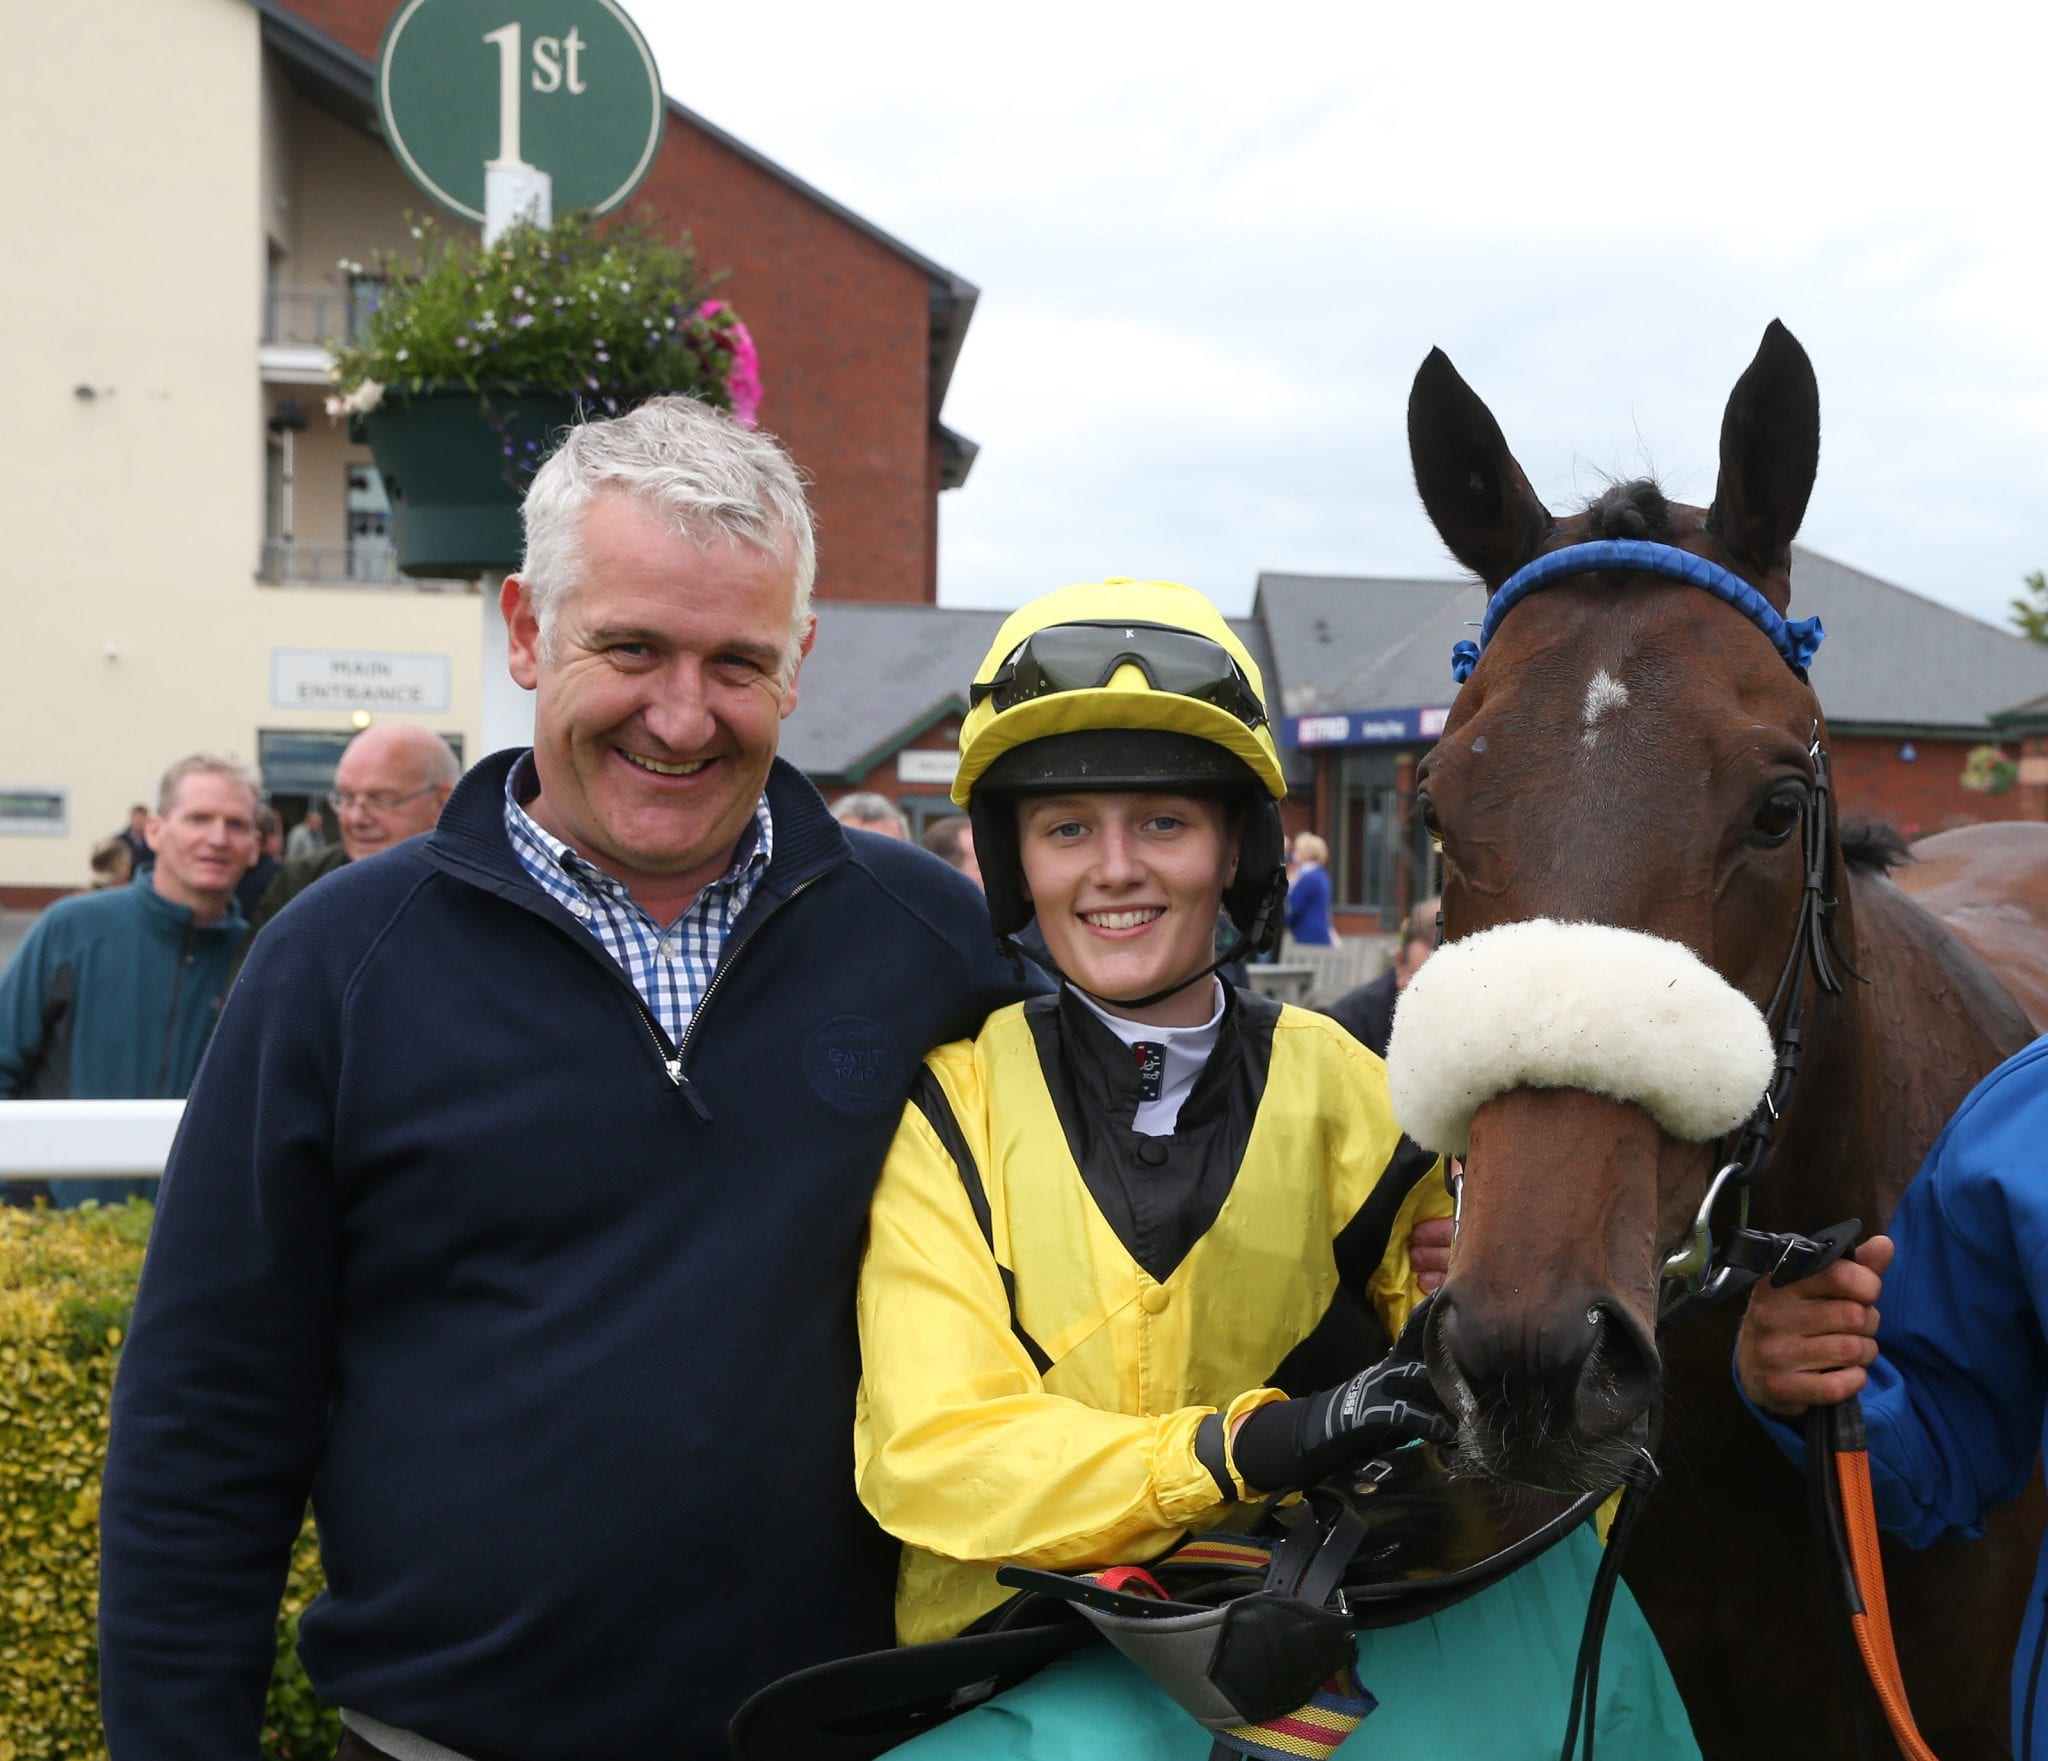 Red Rum trainer Ginger McCain's granddaughter wins first race aged 16